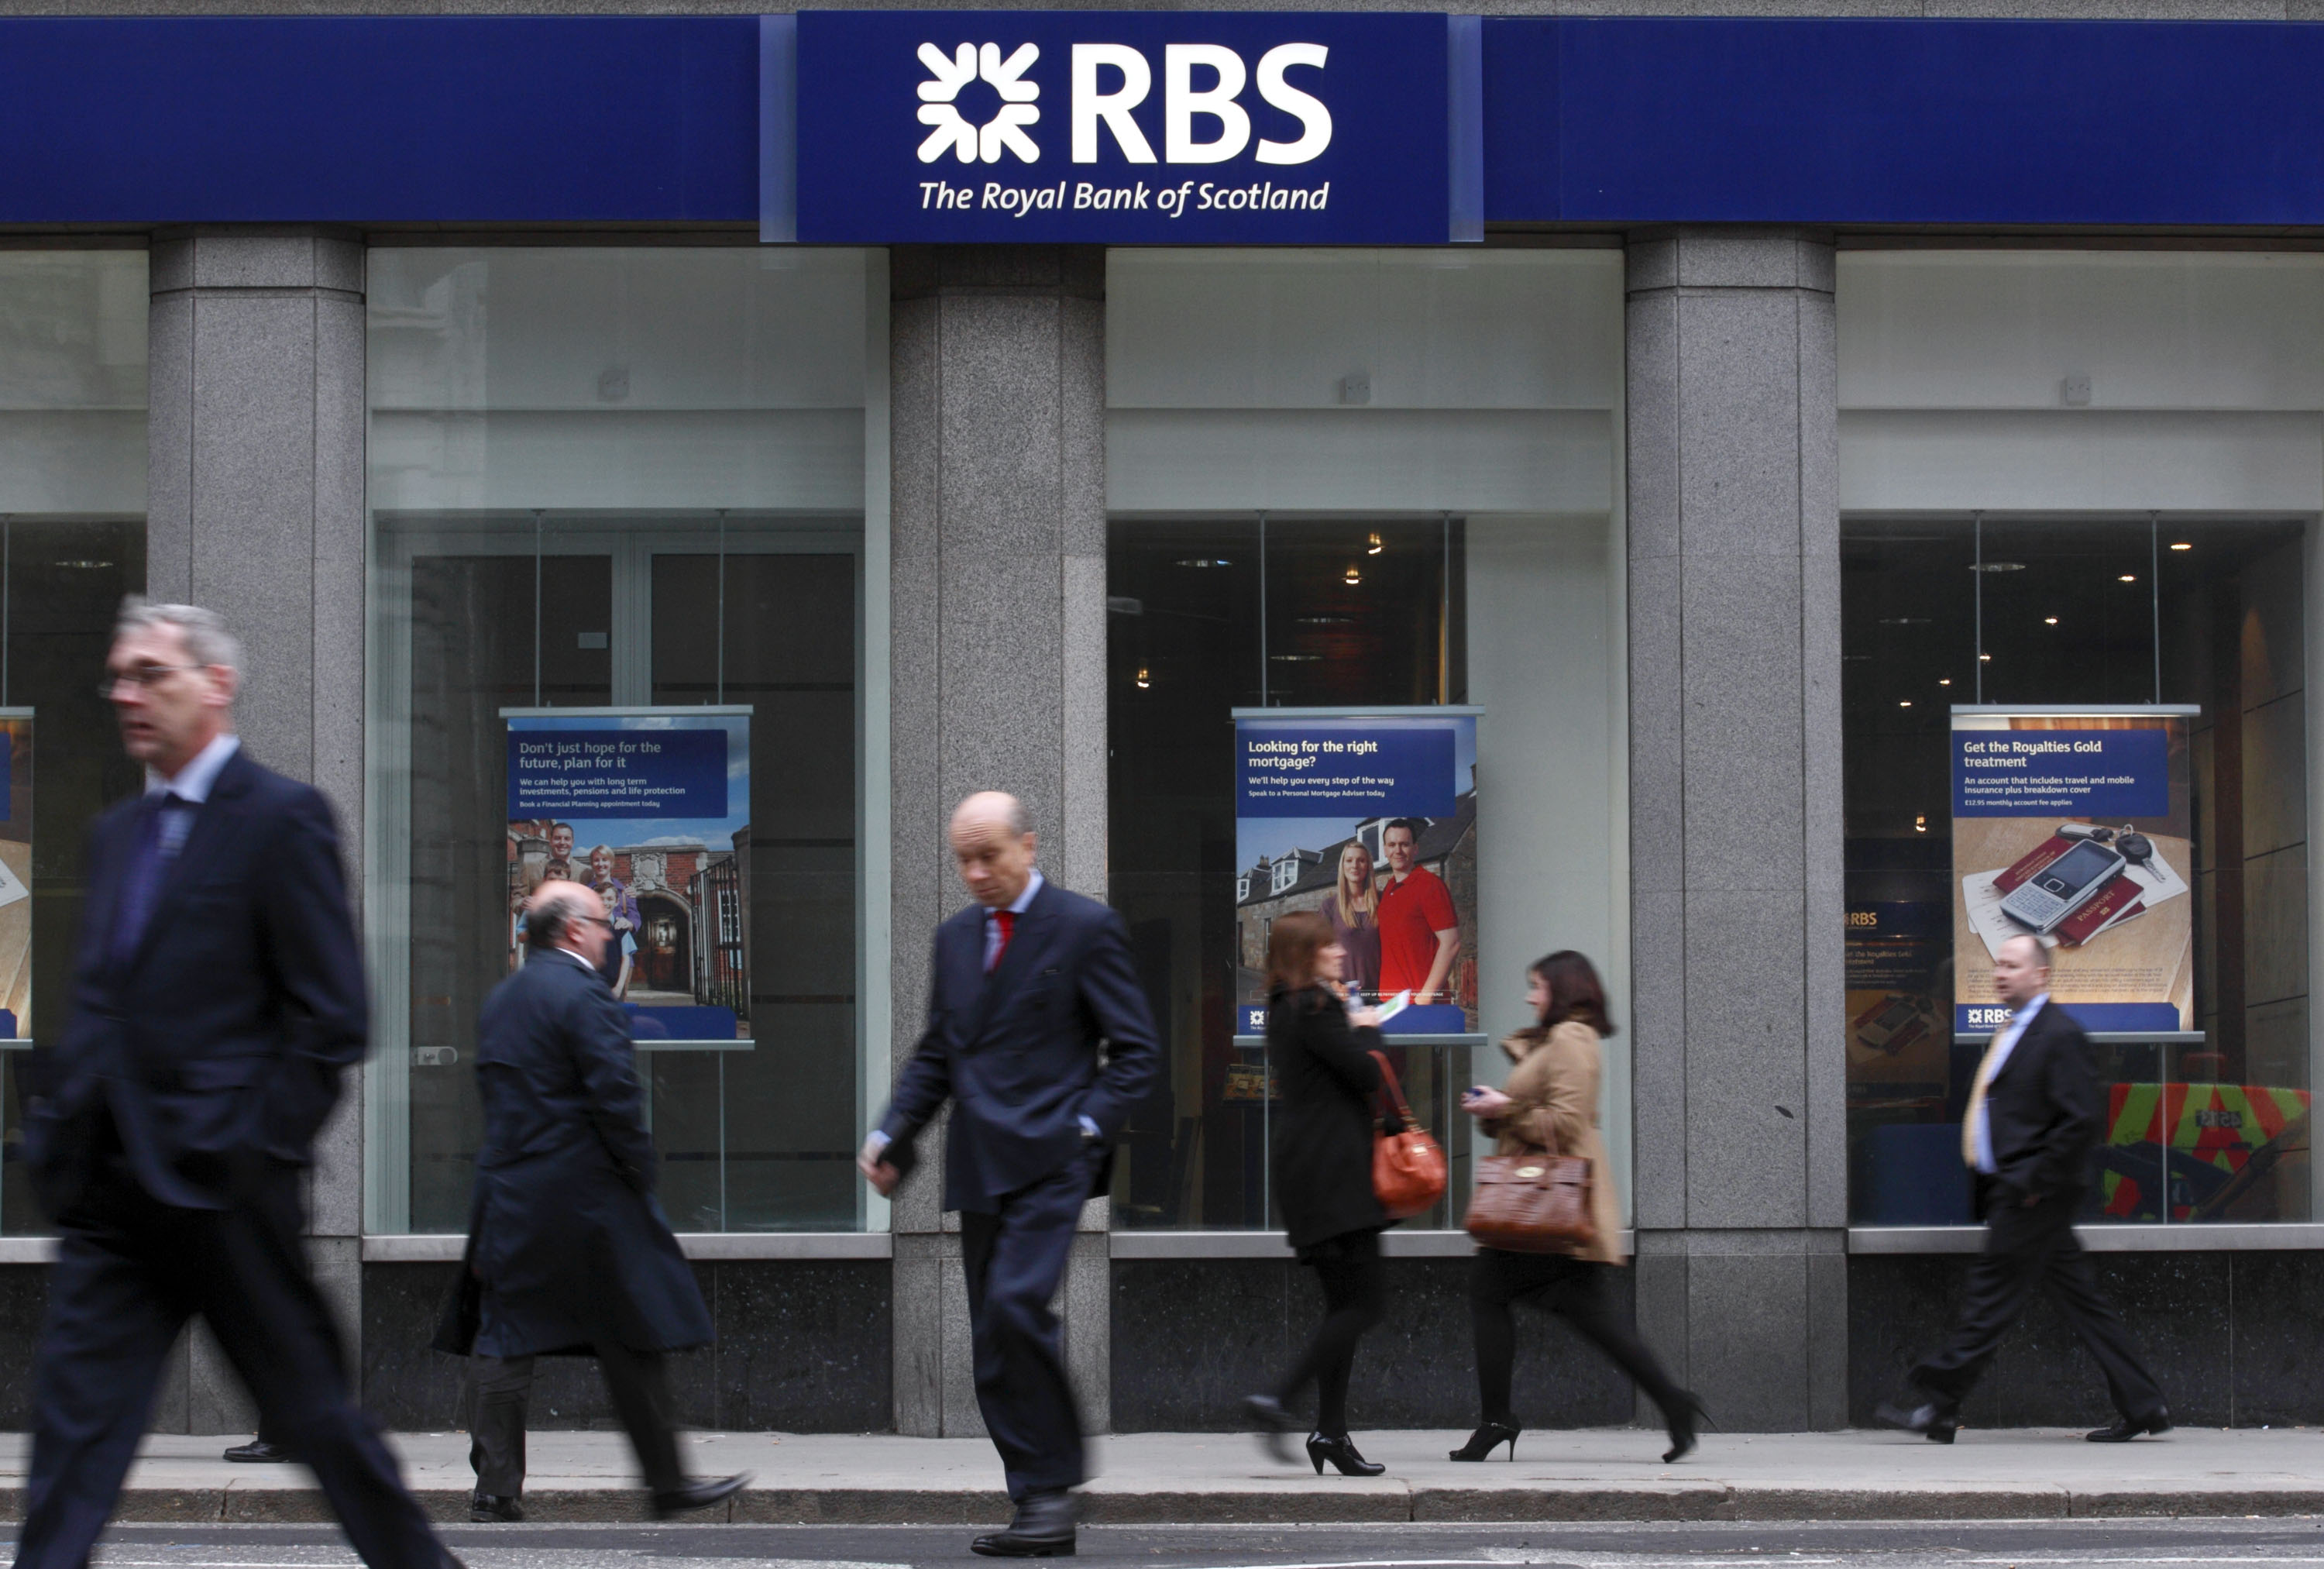 royal bank of scotland essay